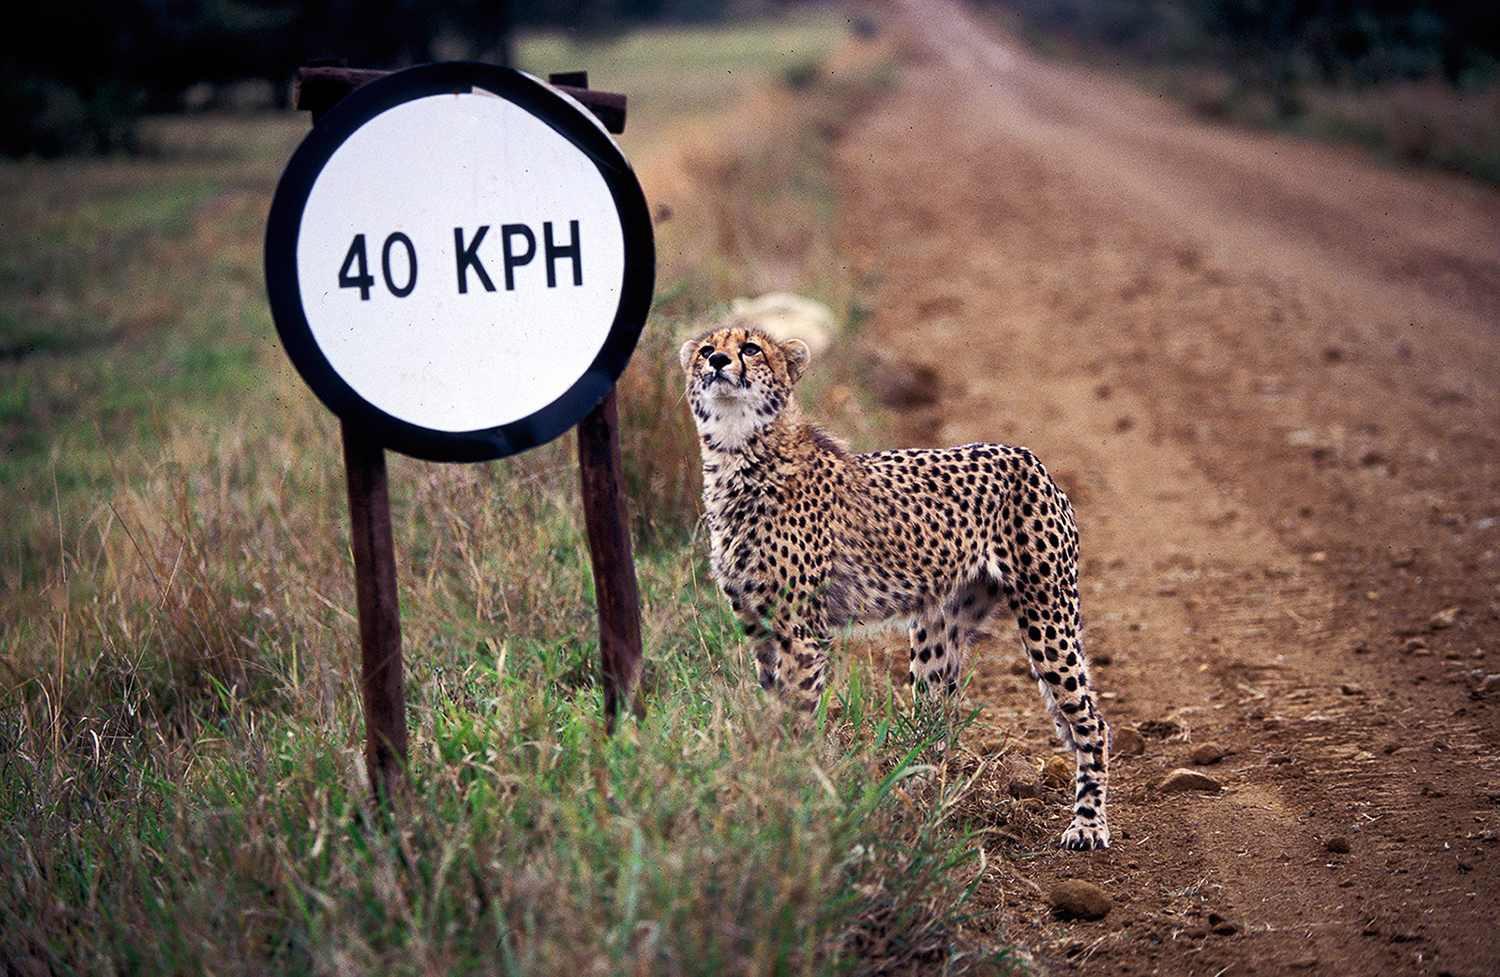 The Cheetah's Speed Limit